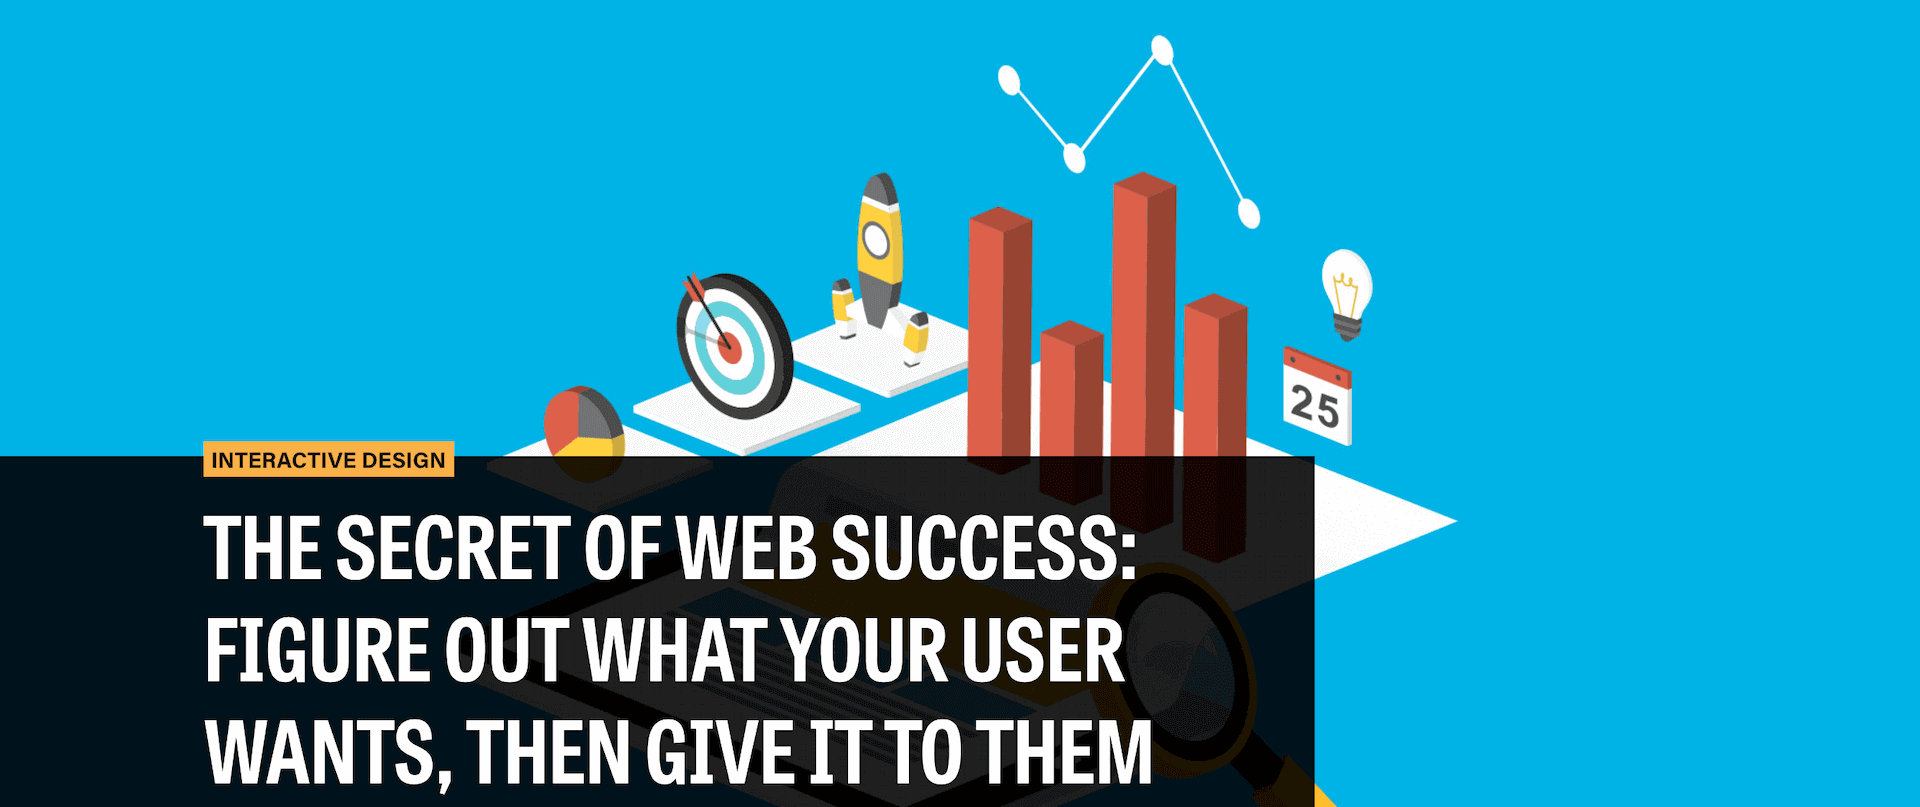 The Secret of Web Success